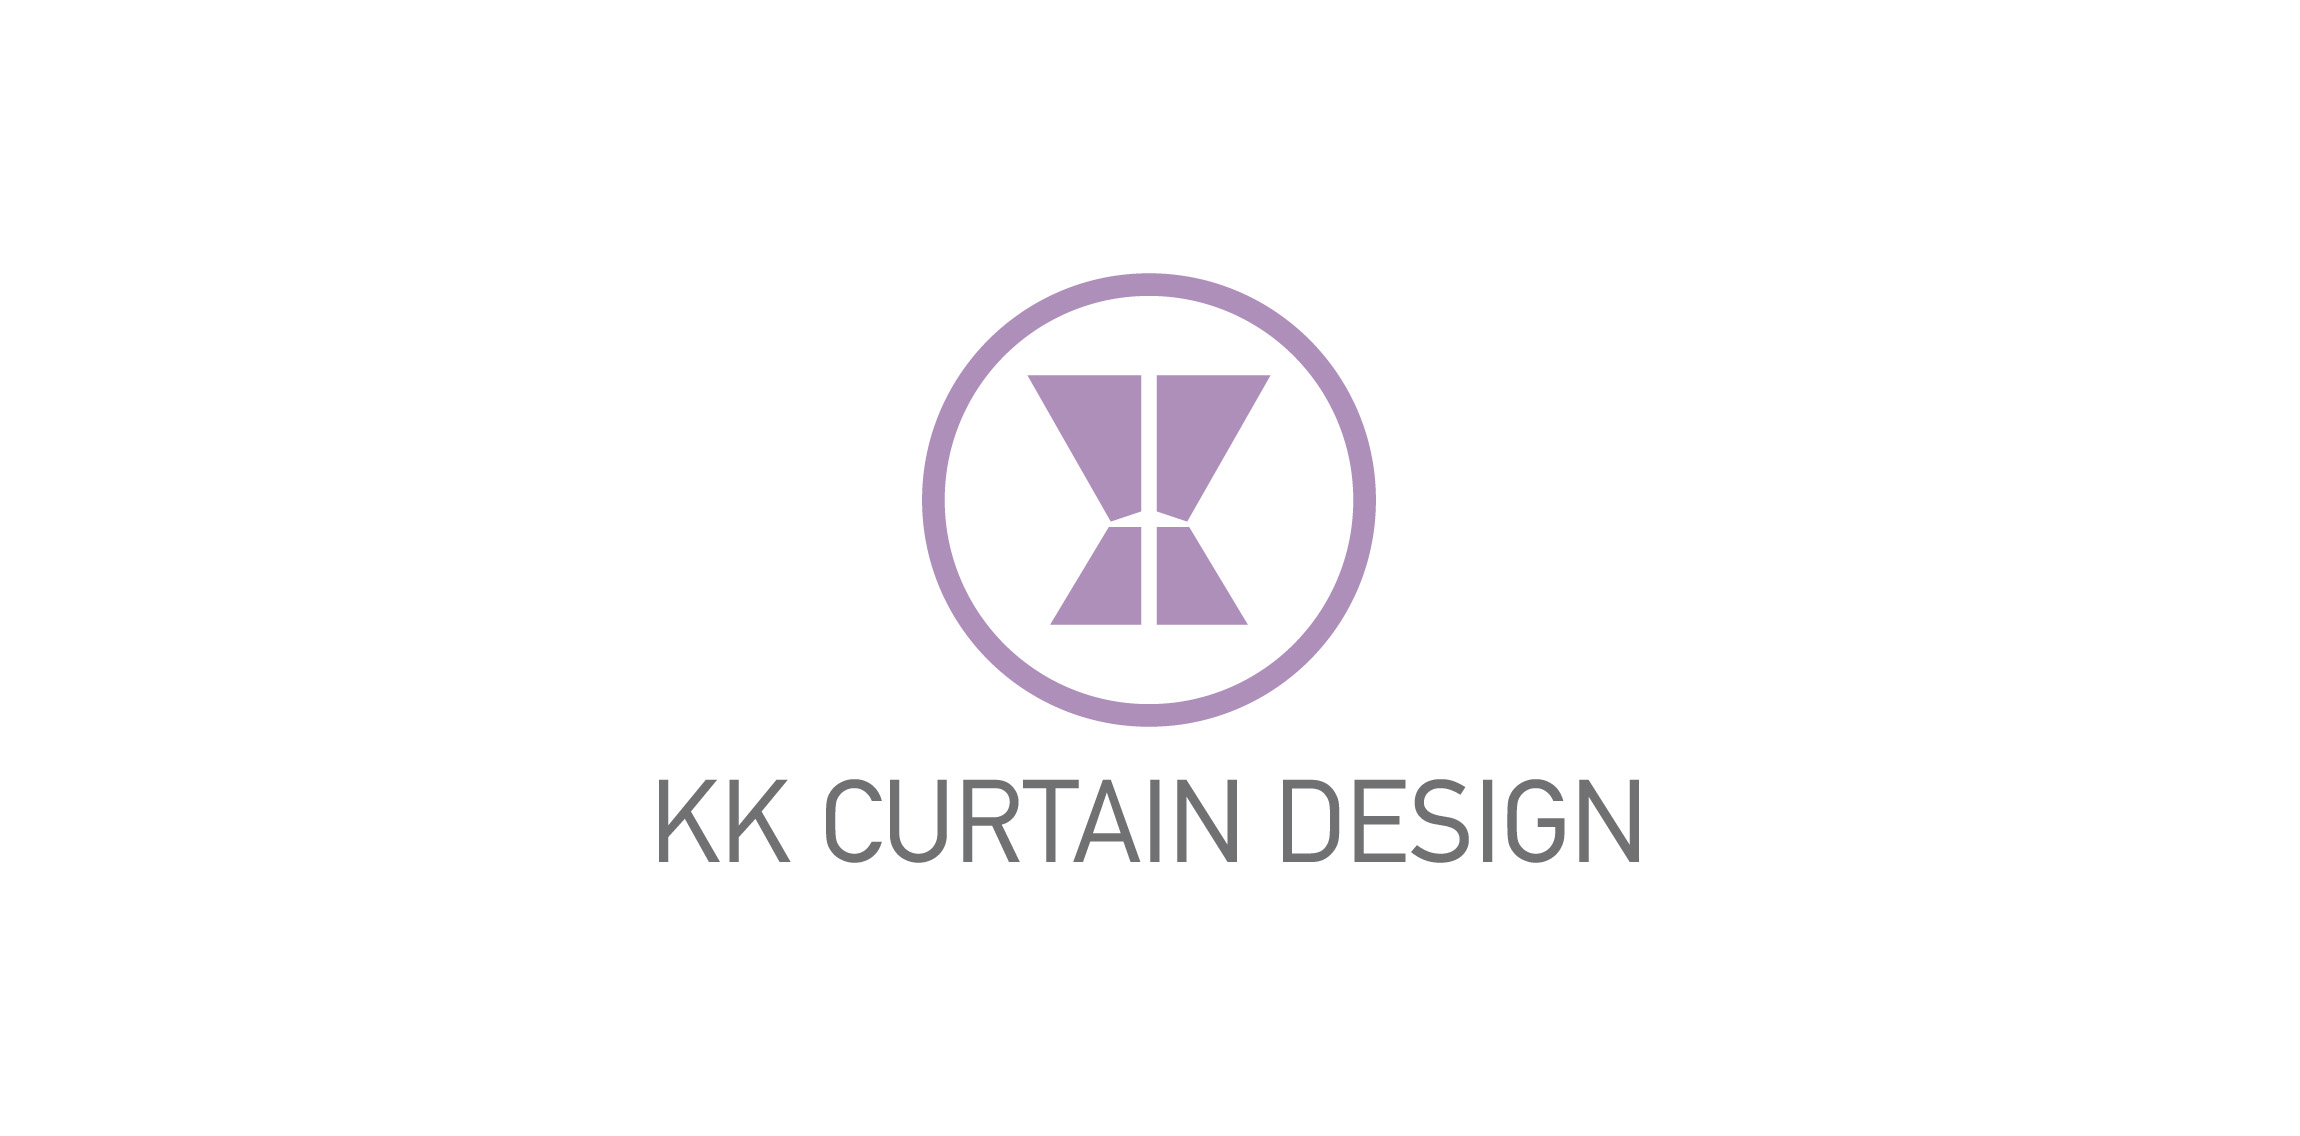 KK Curtain Design